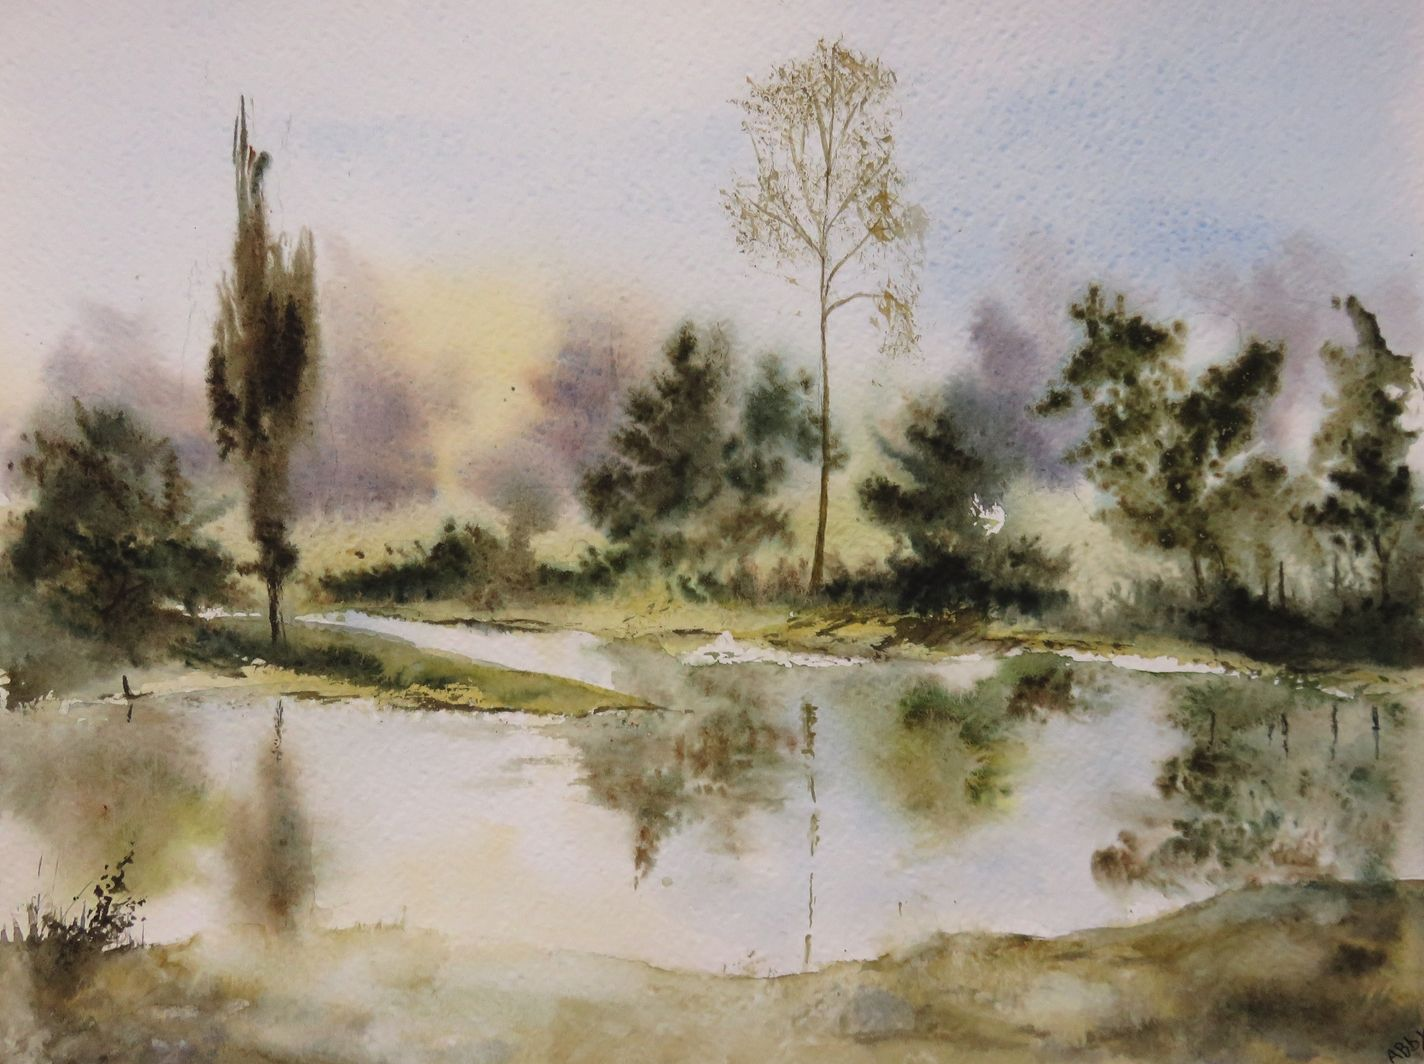 Miroir D Eau Aquarelle 23 X 31 Cm Art Watercolor Art